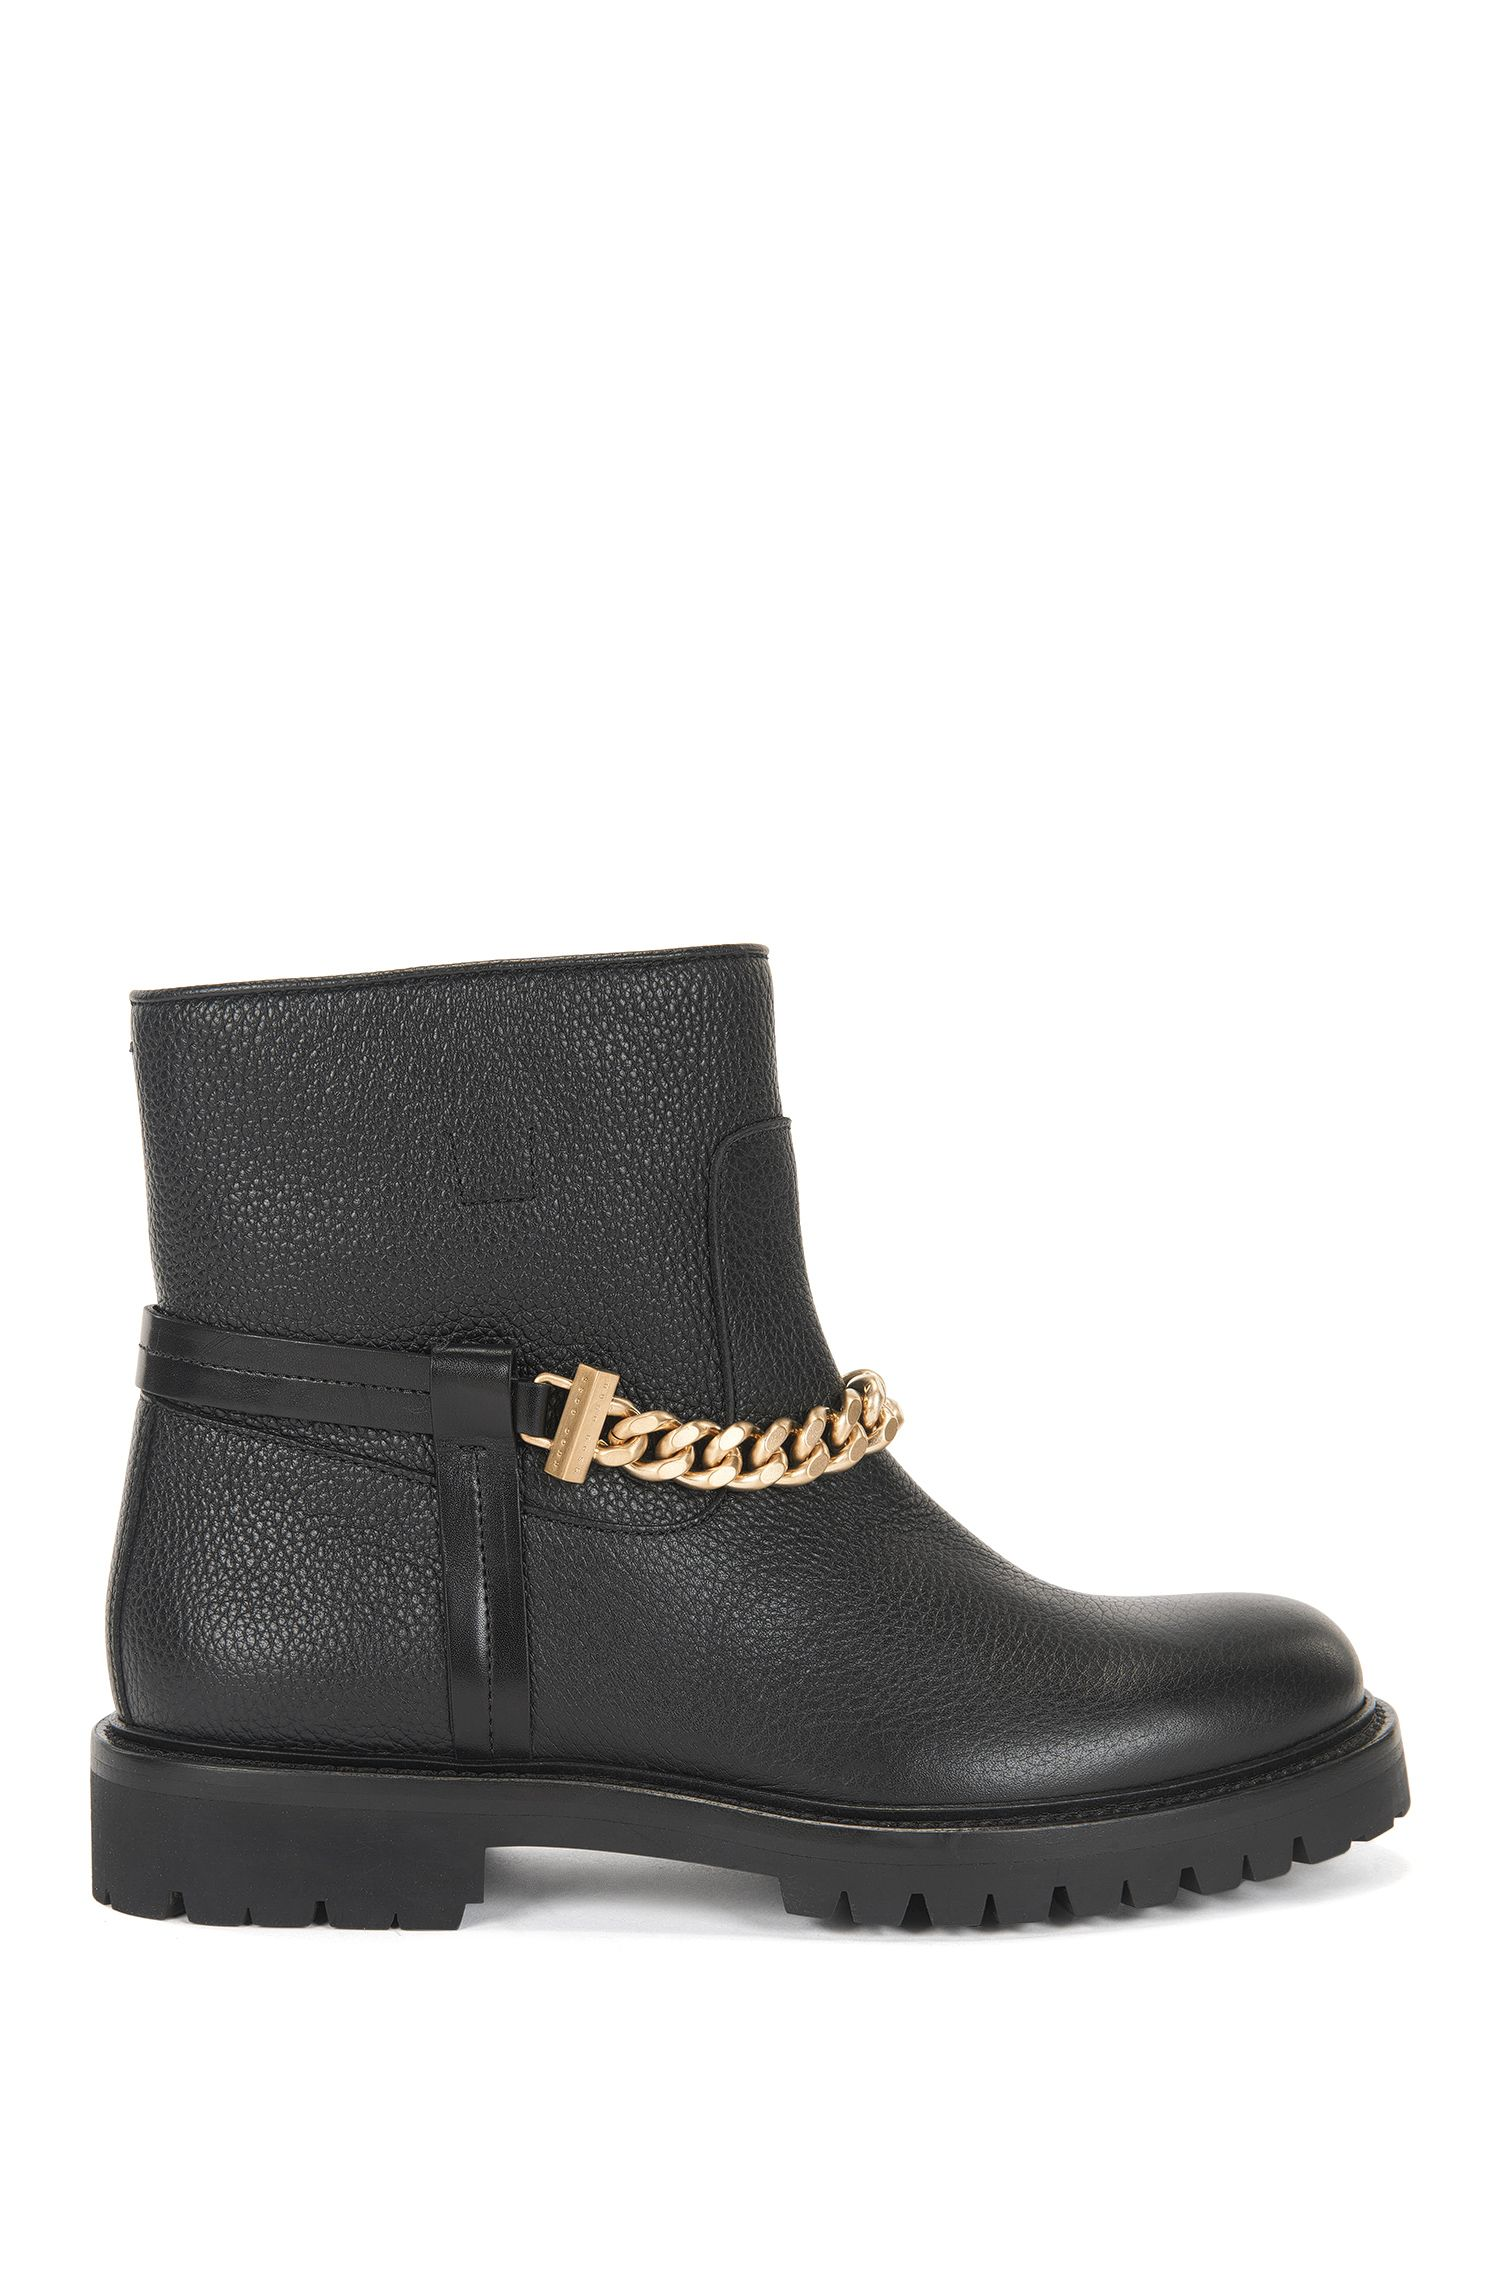 Leather boots with chain detail